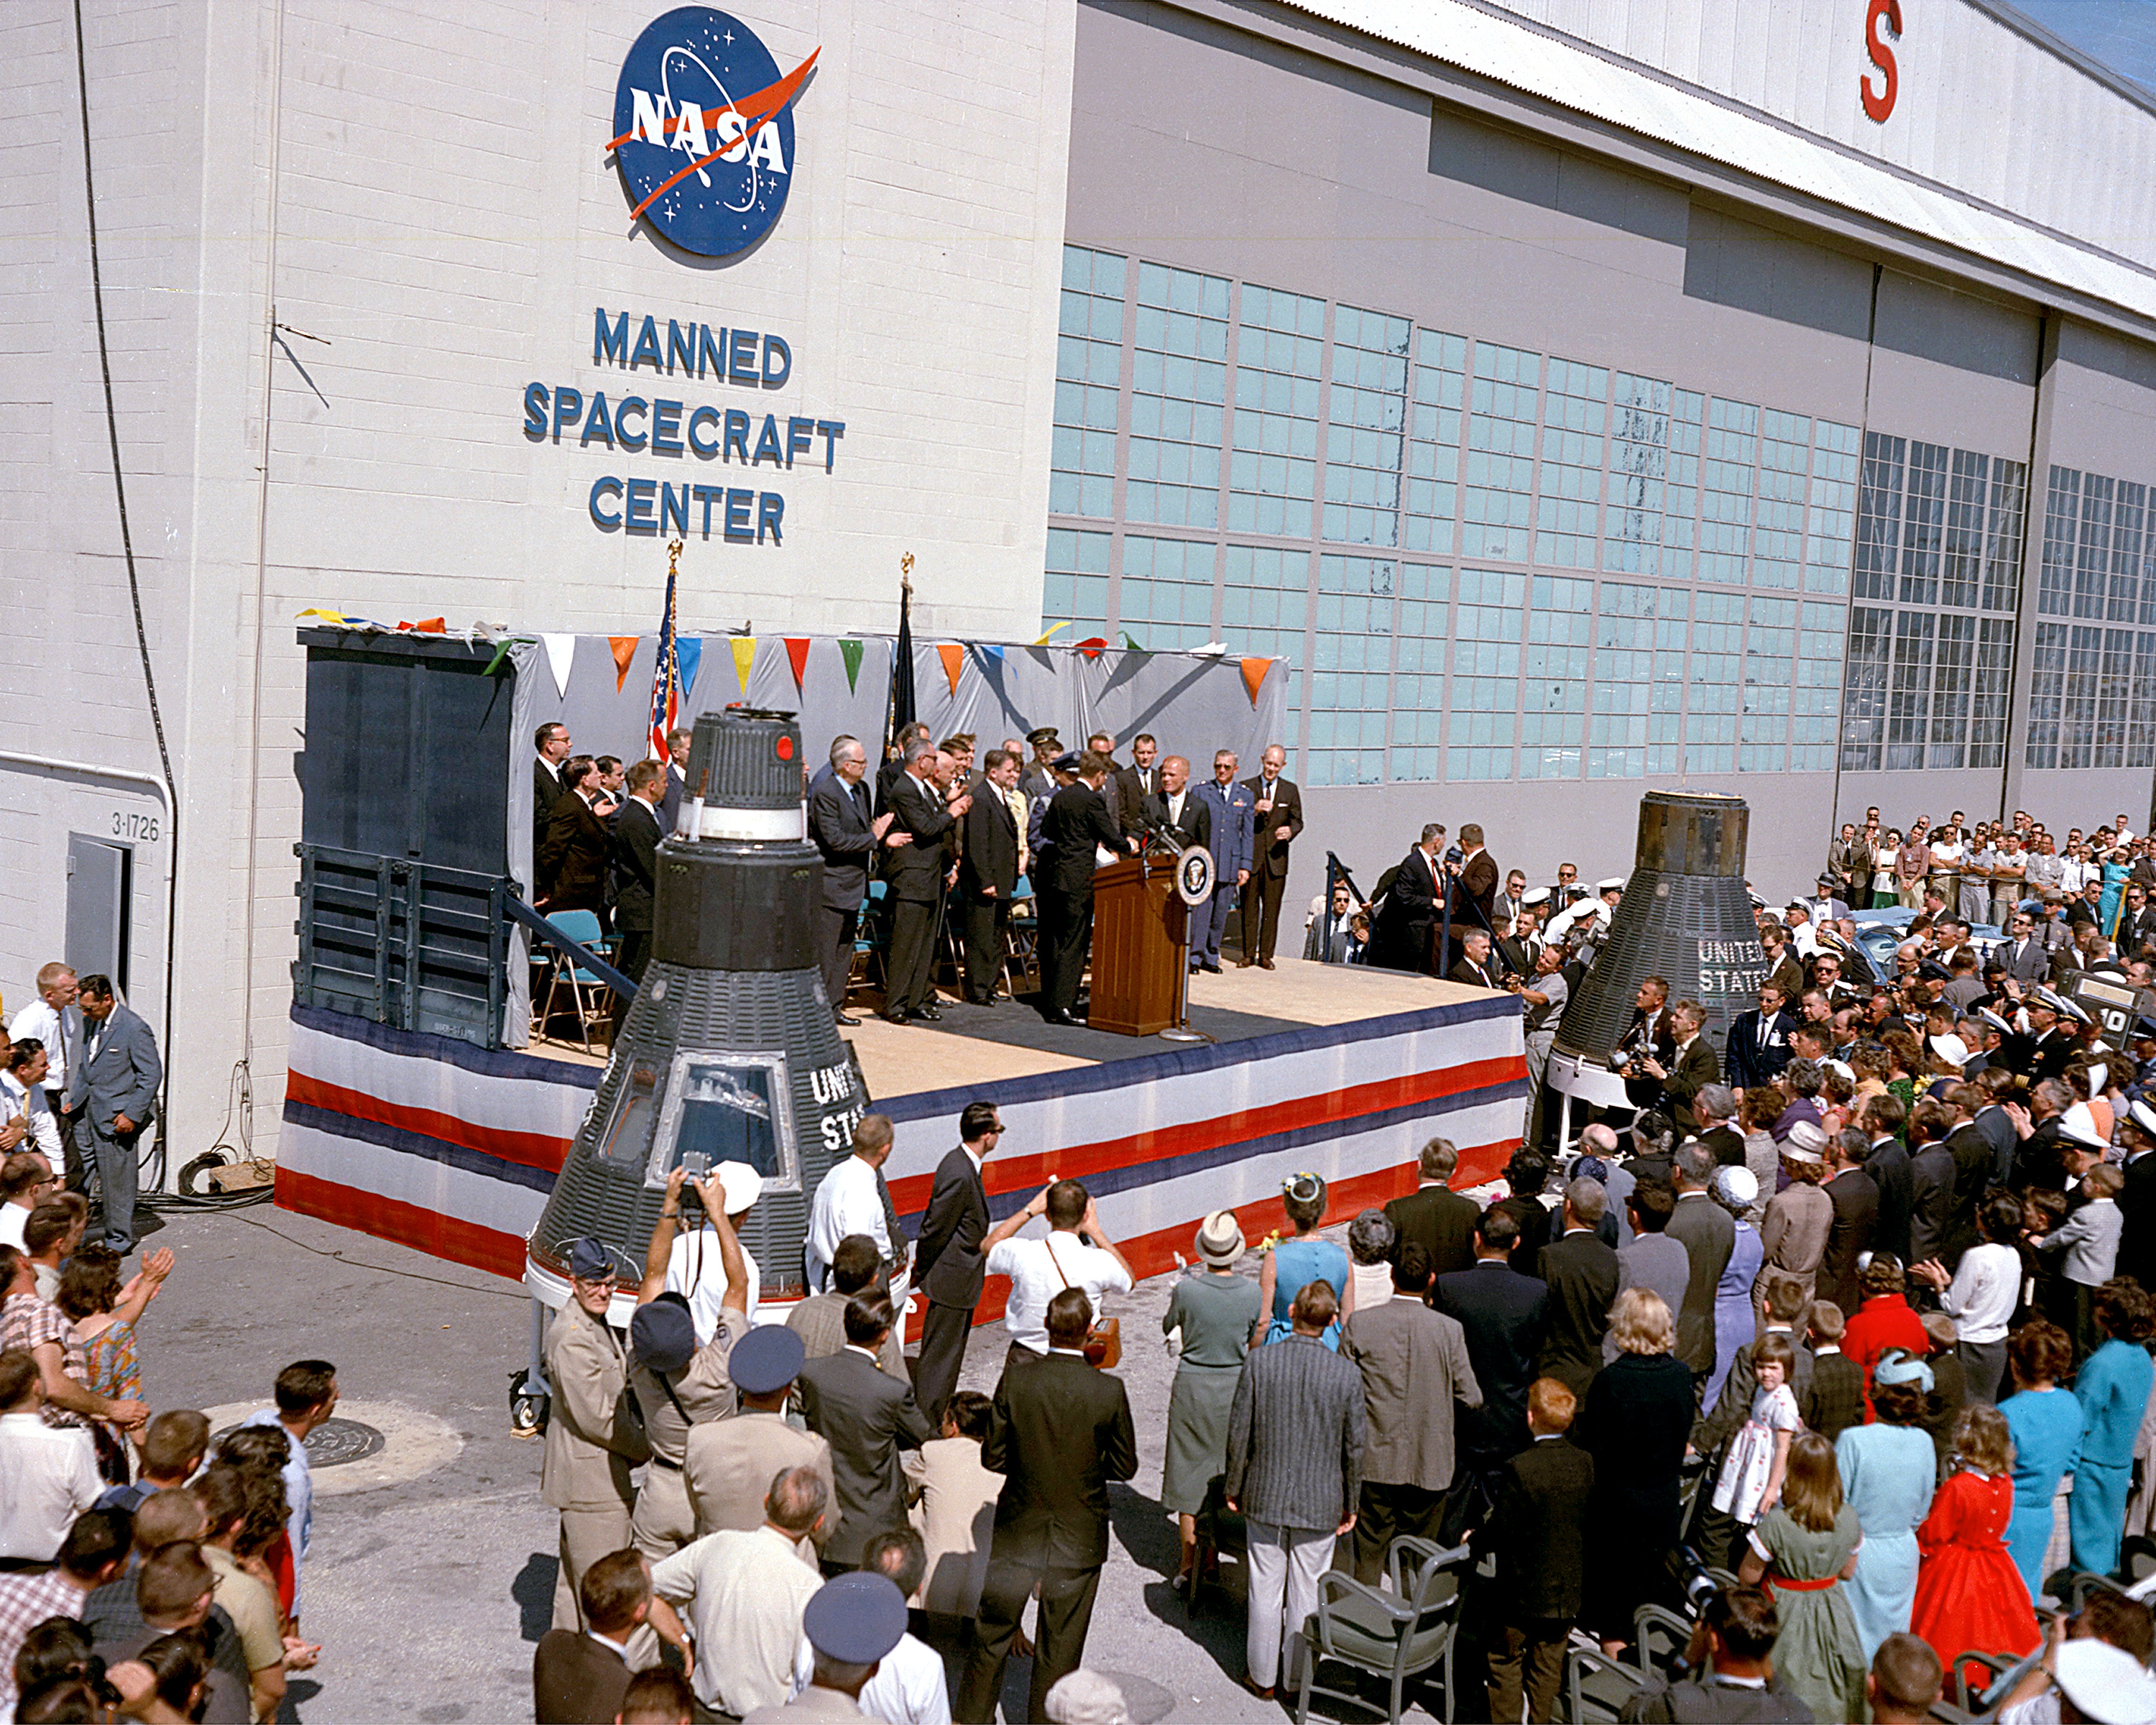 Astronaut John Glenn, Jr. is honored by President John F. Kennedy after his historical first manned orbital flight. The ceremony is being held at Hanger S at Cape Canaveral, where the Manned Spacecraft Center had its facilties; the MSC would open its permanent headquarters in Houston in September 1963. Photo taken on February 23, 1962.